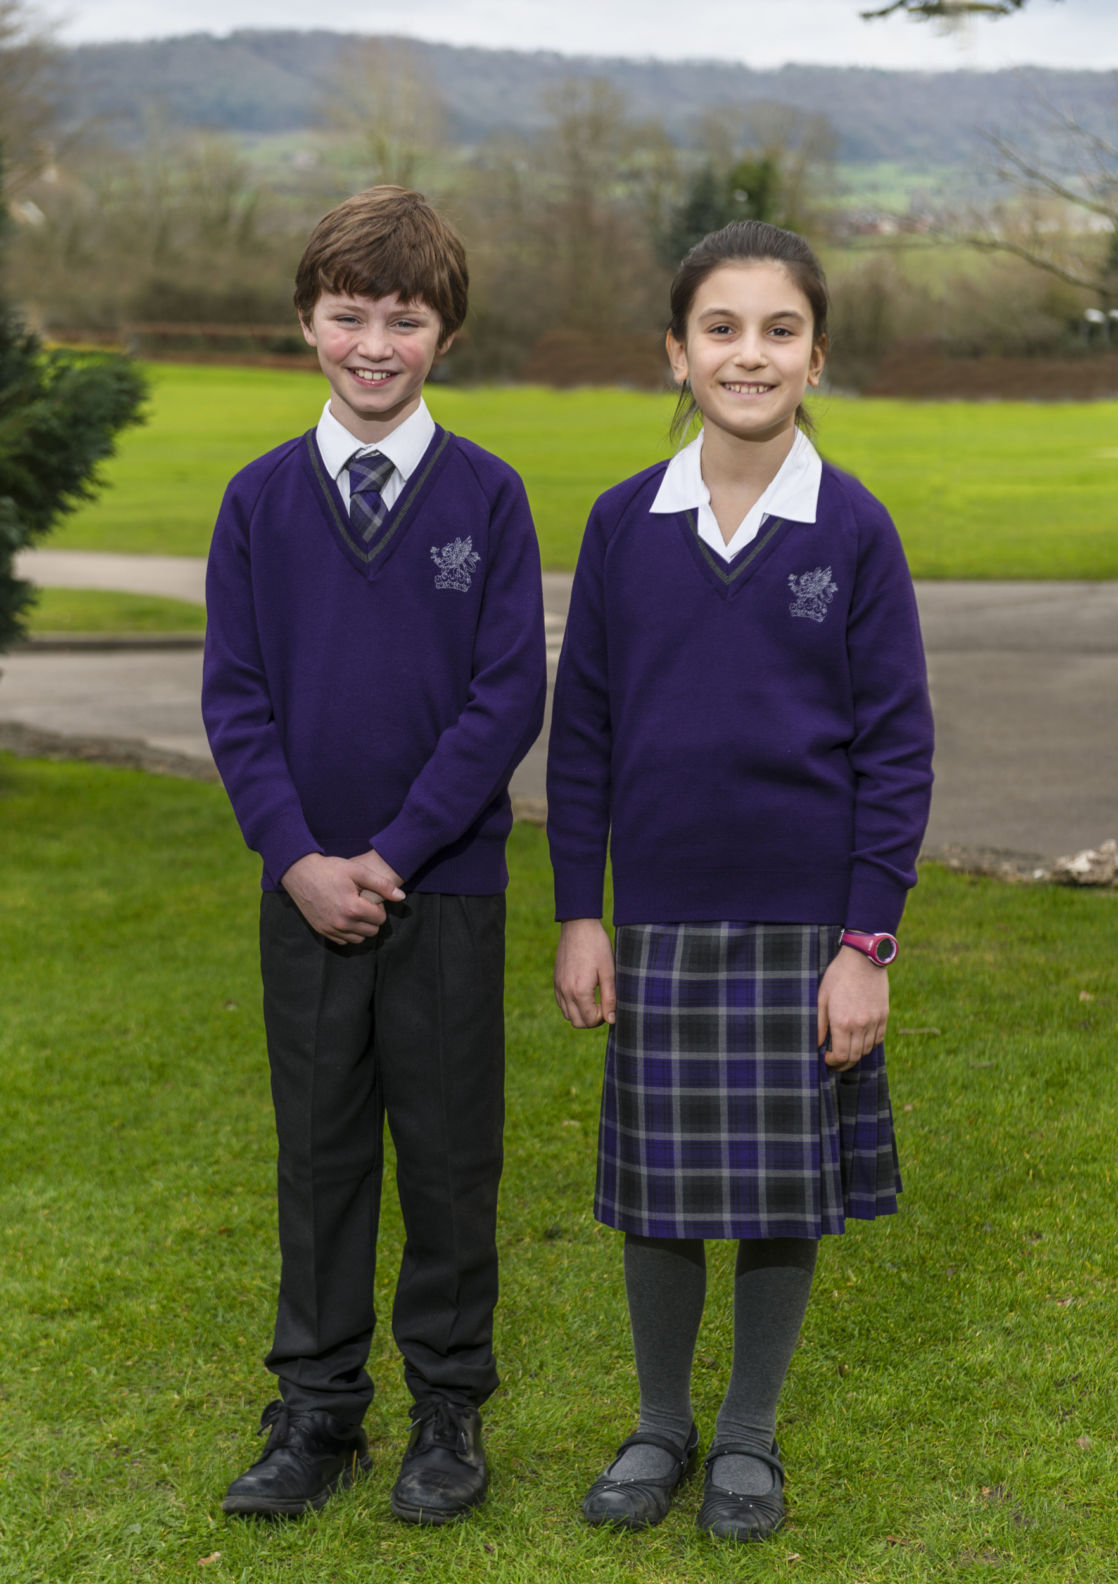 wycliffe prep students wearing the uniform